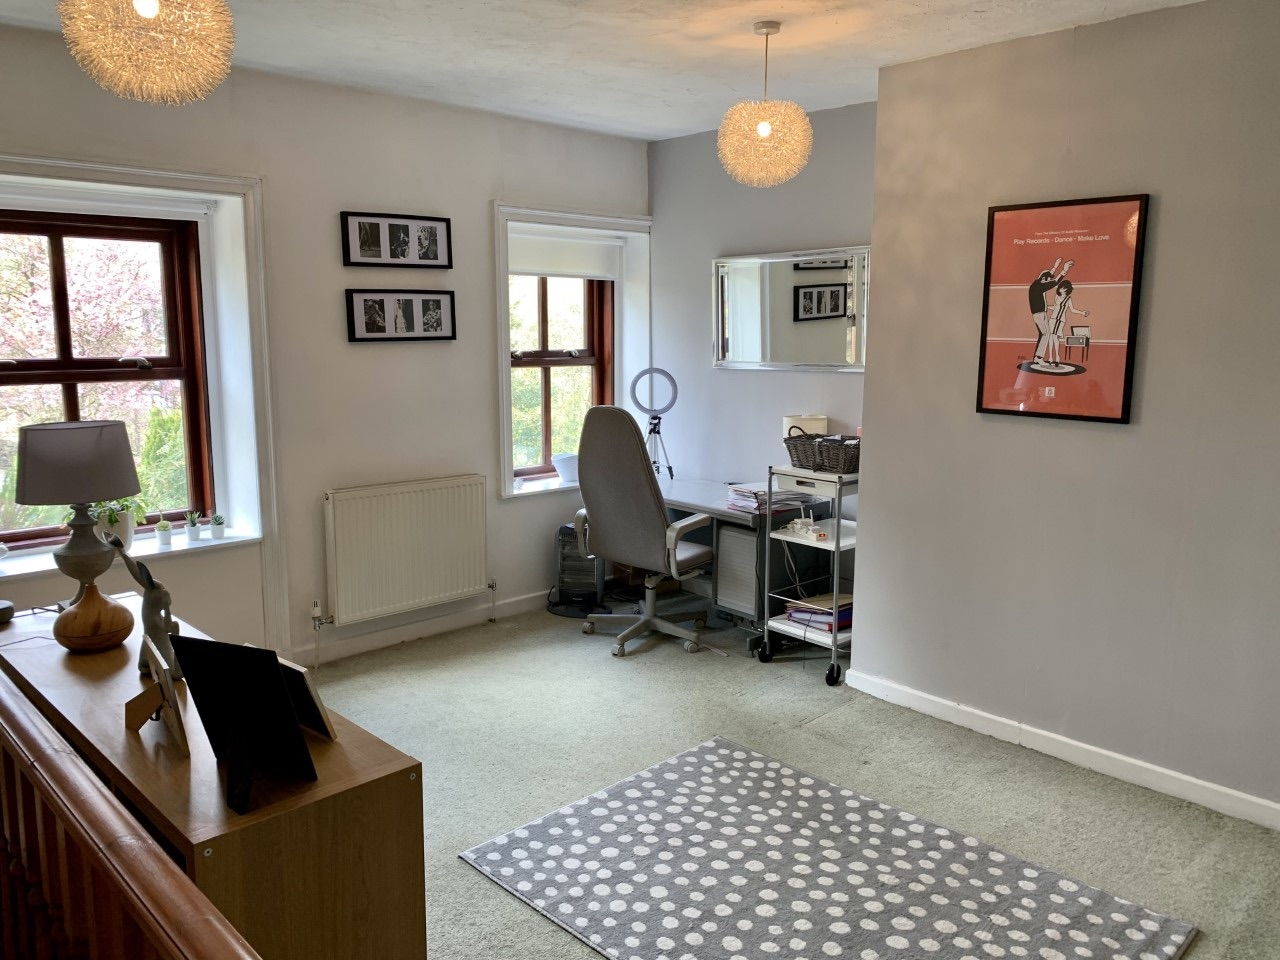 3 bedroom detached house For Sale in Calderdale - Photograph 8.